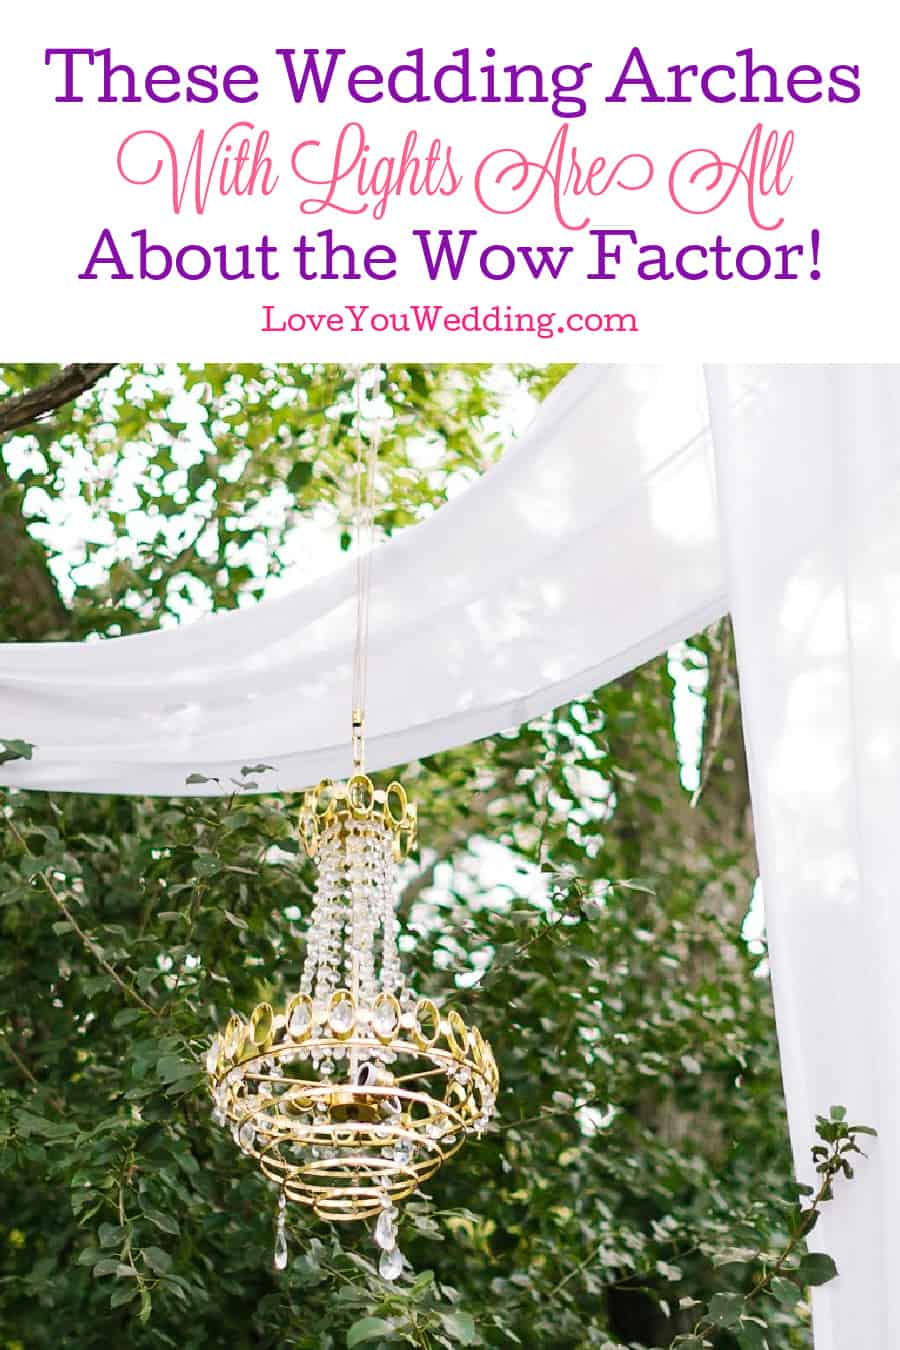 """If you're looking for ways to really crank up the """"wow factor"""" of your nighttime nuptials, take a look at these stunning wedding arches with lights!"""